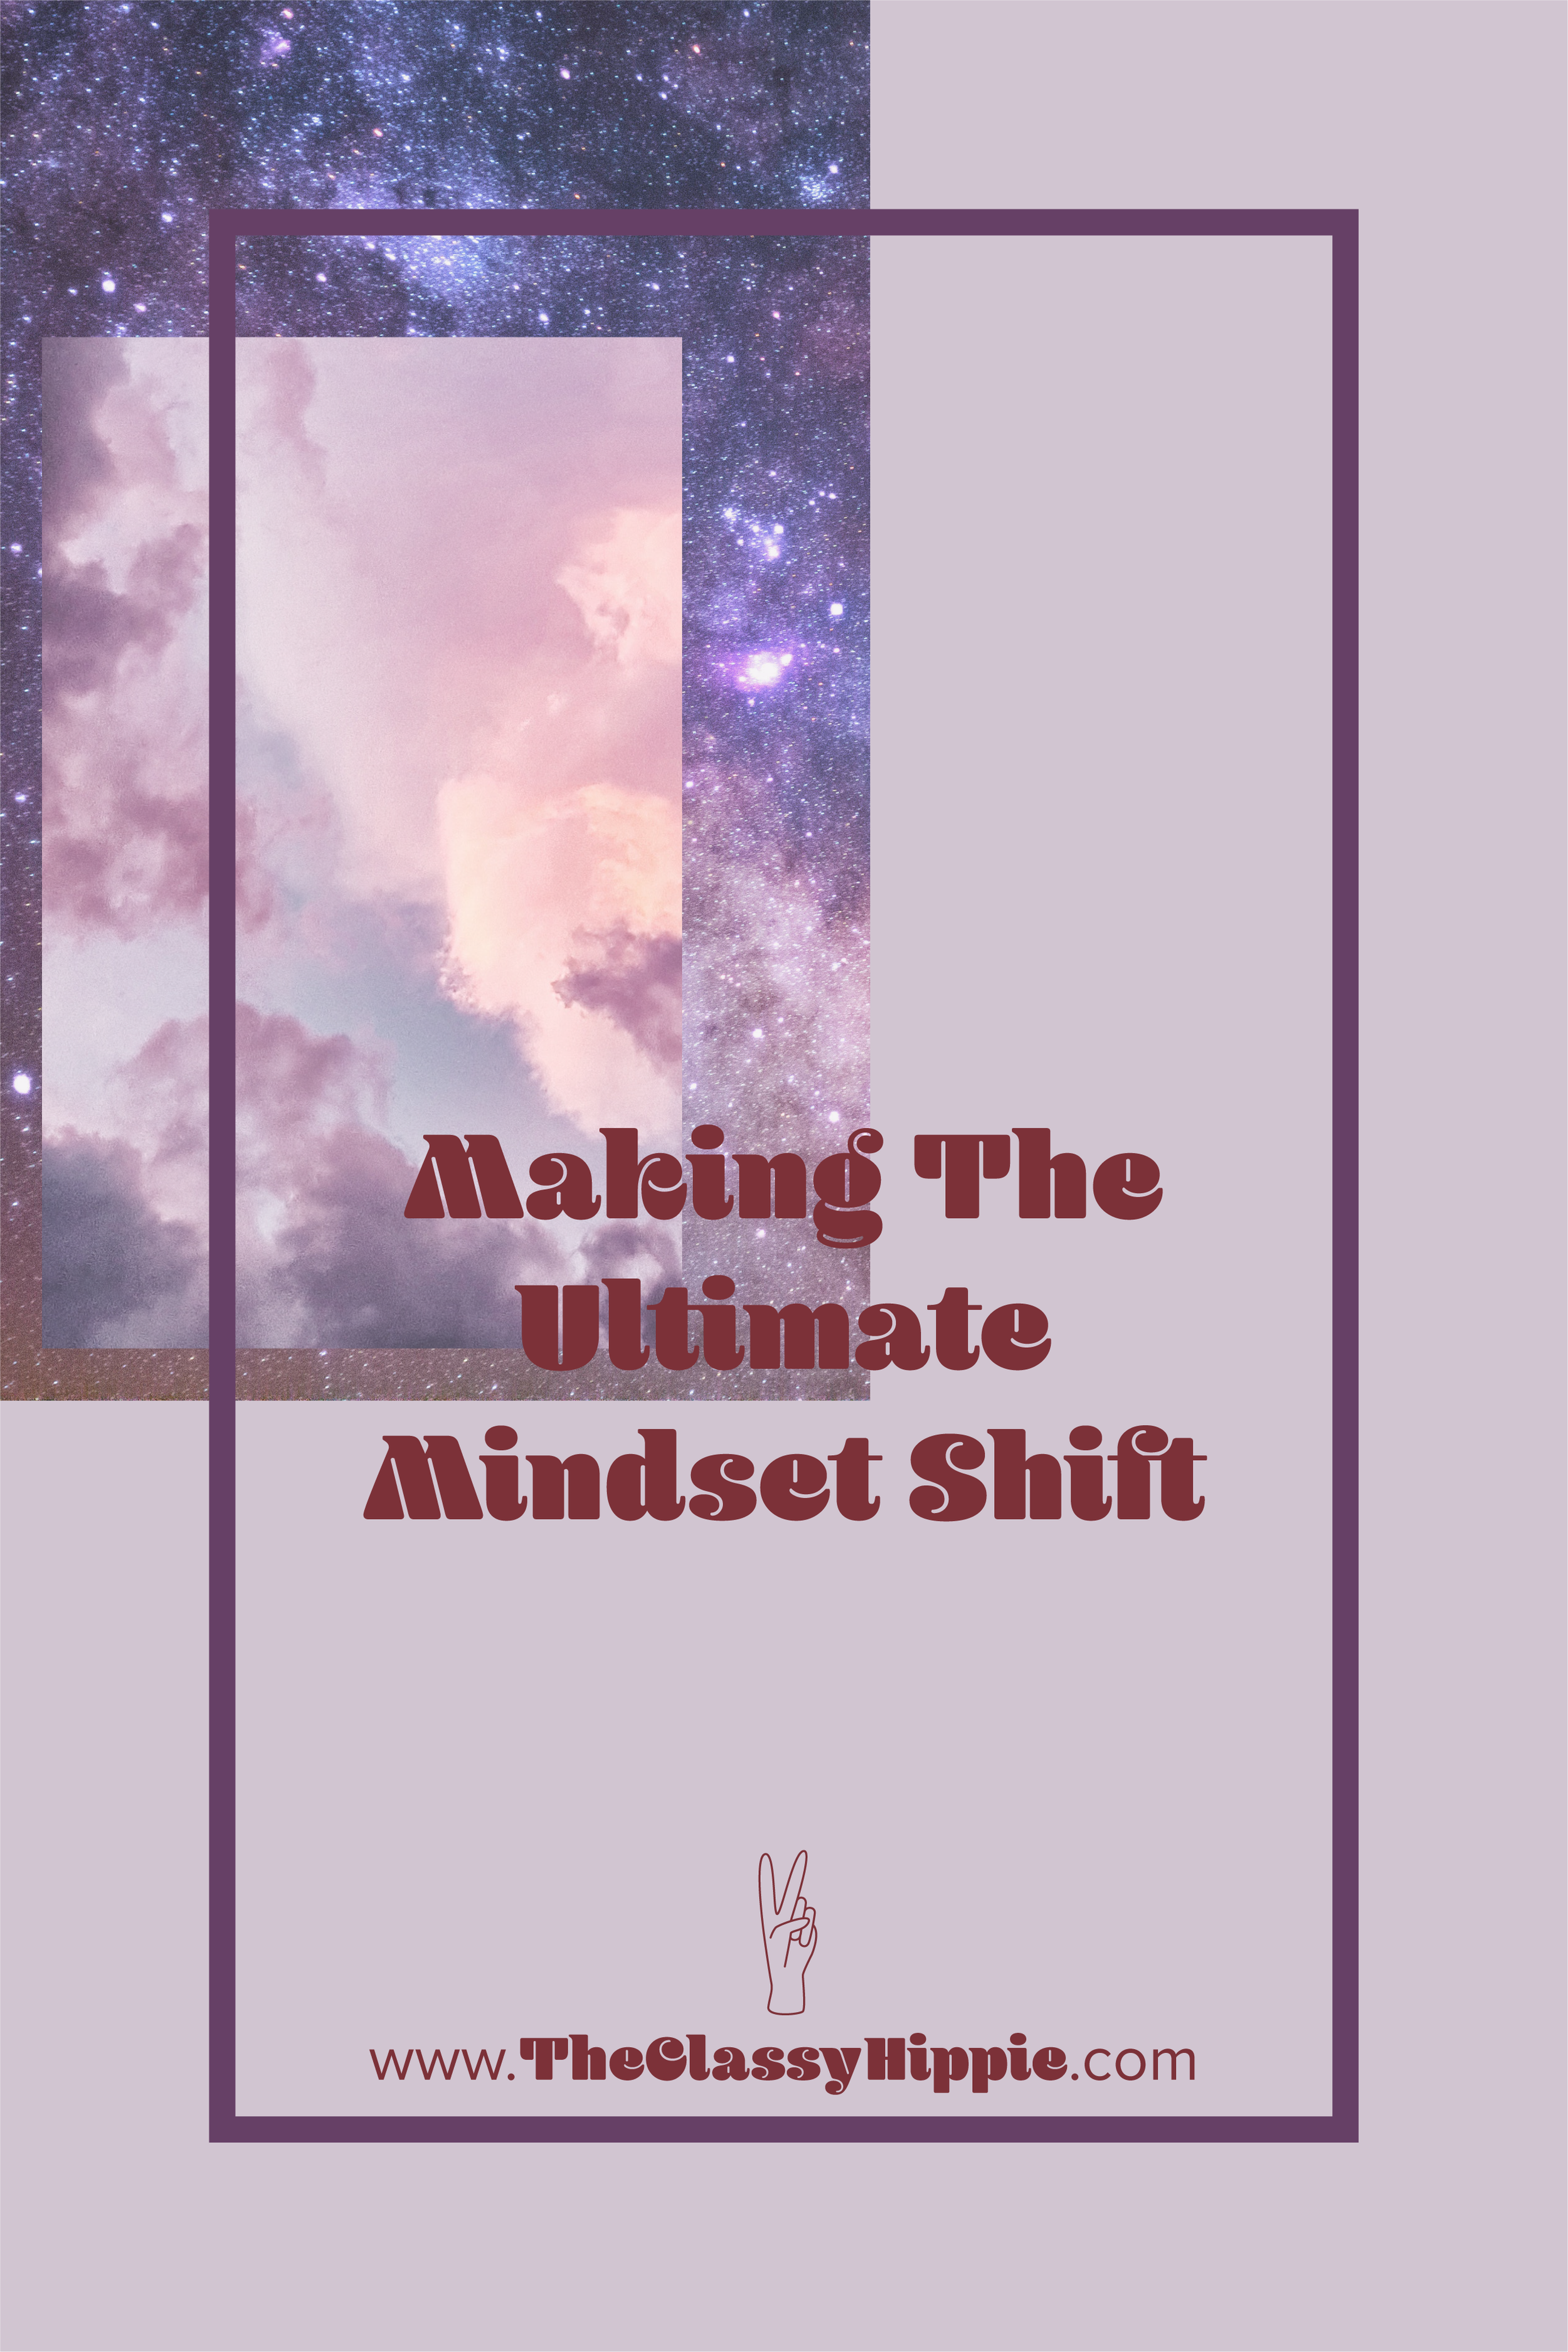 Having the life that we want is 100% dependent upon our mindset. Check out this post to read about making the ultimate mindset shift so that you can start loving your life right away!